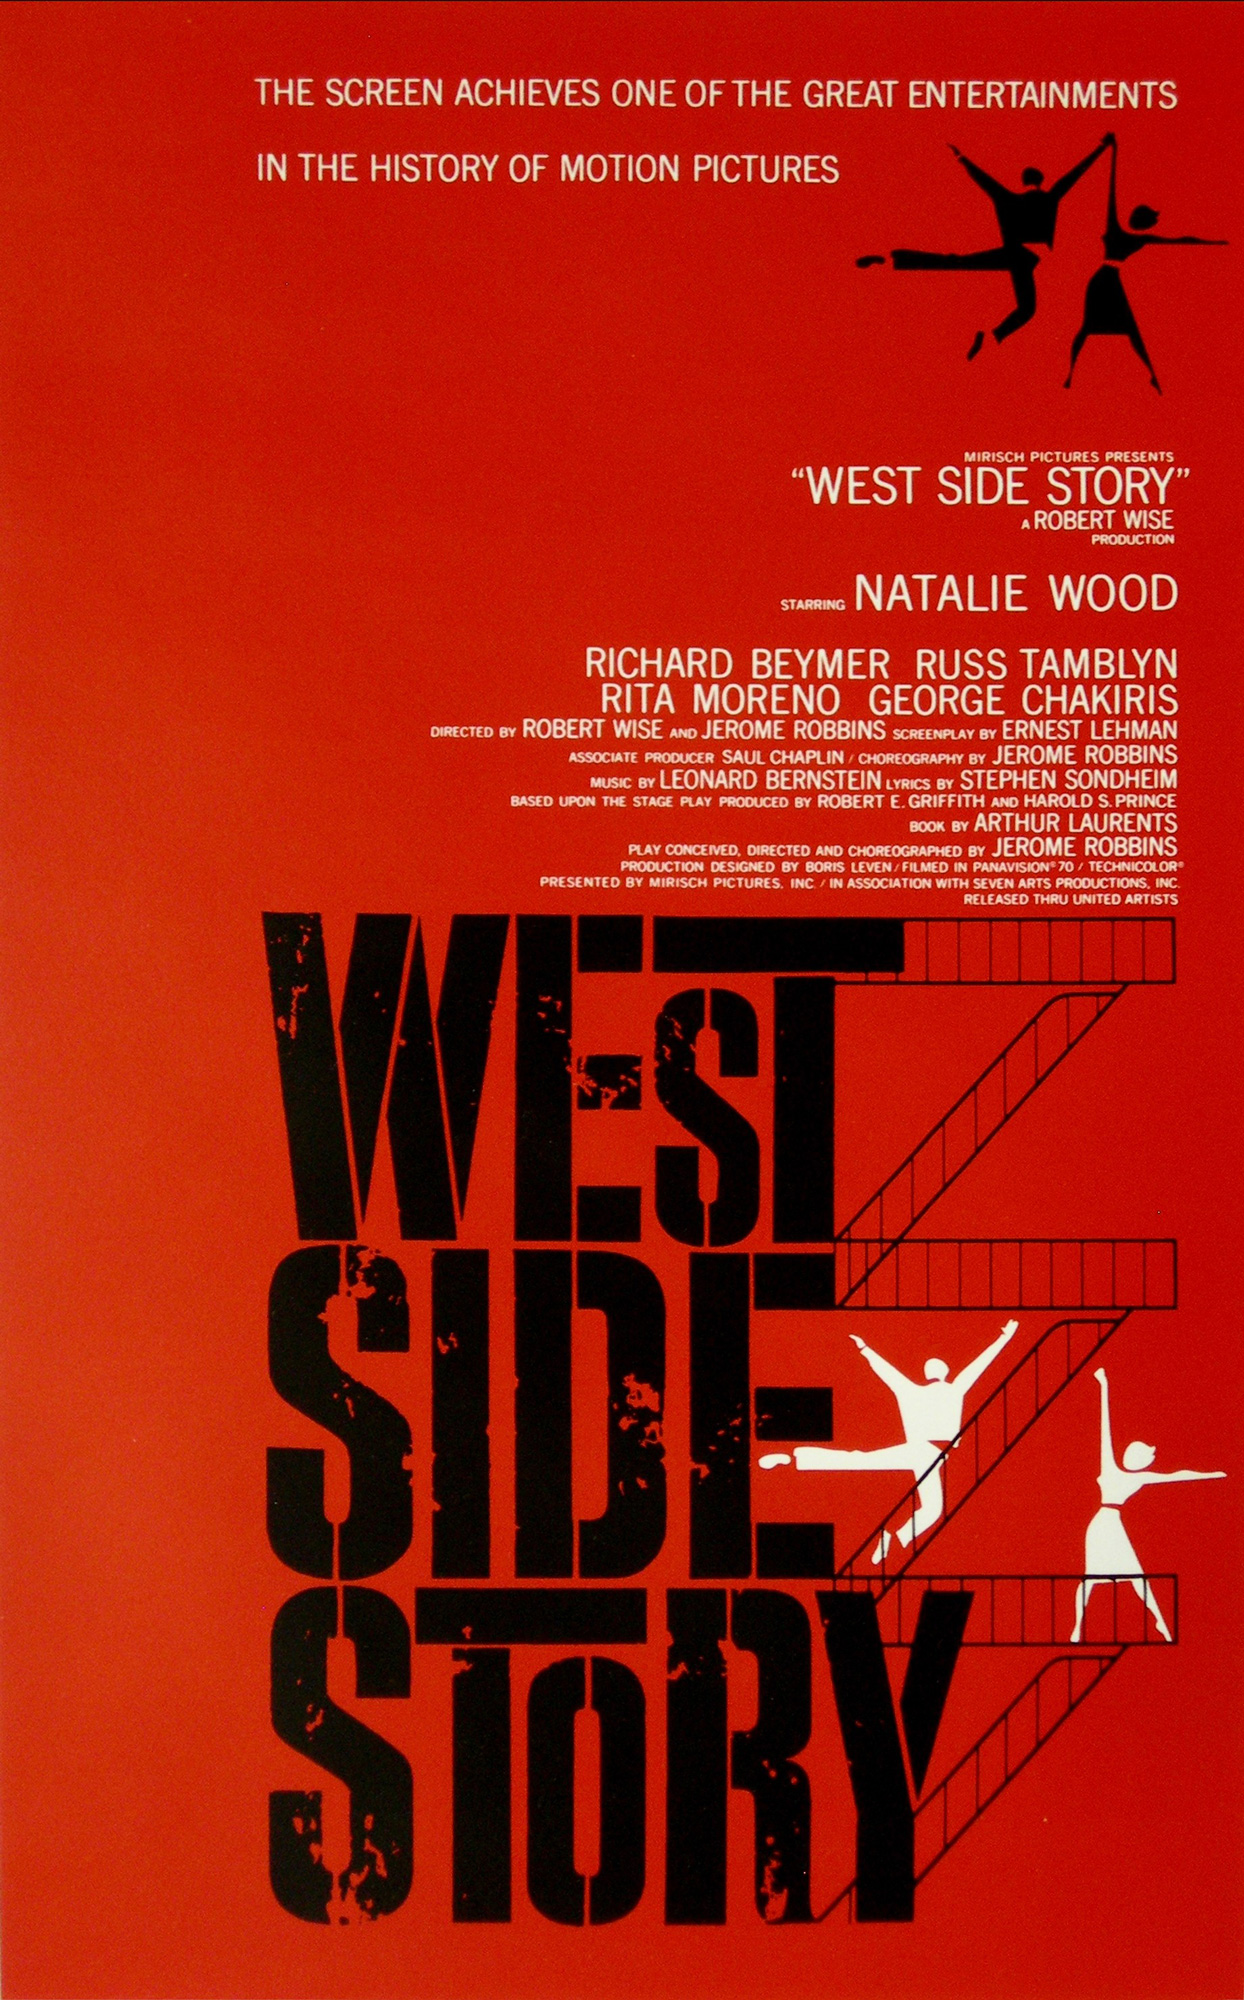 West Side Story film poster - The British Library